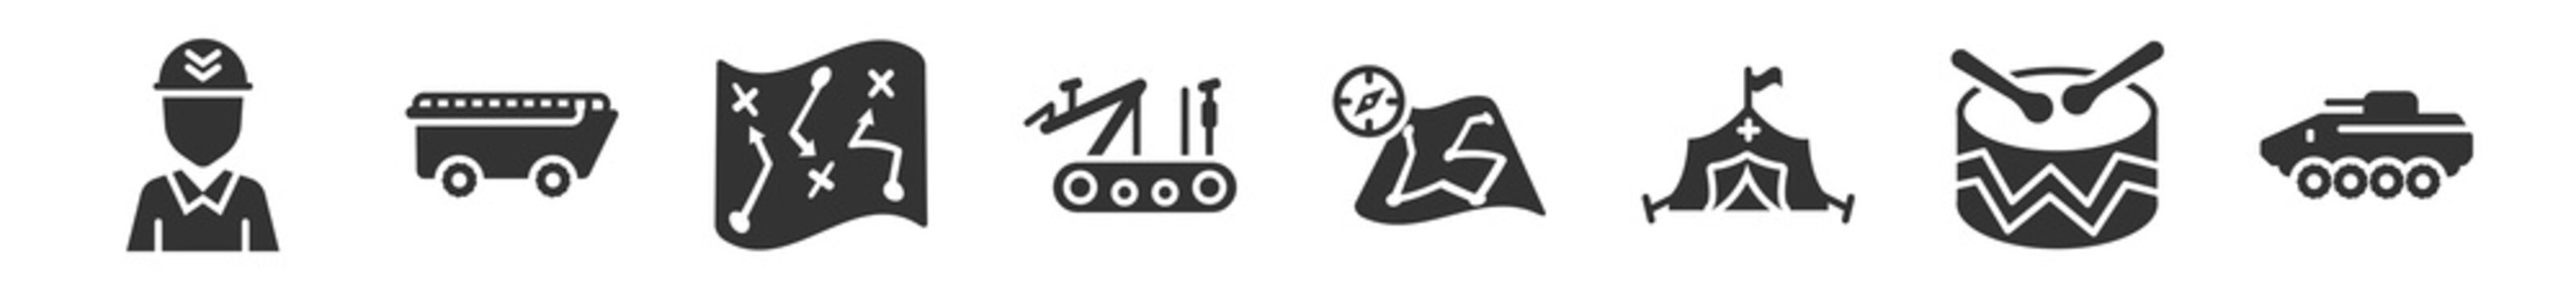 filled set of army icons. glyph vector icons such as militar, amphibian, militar strategy, military robot machine, map and compass, military vehicle. vector illustration.